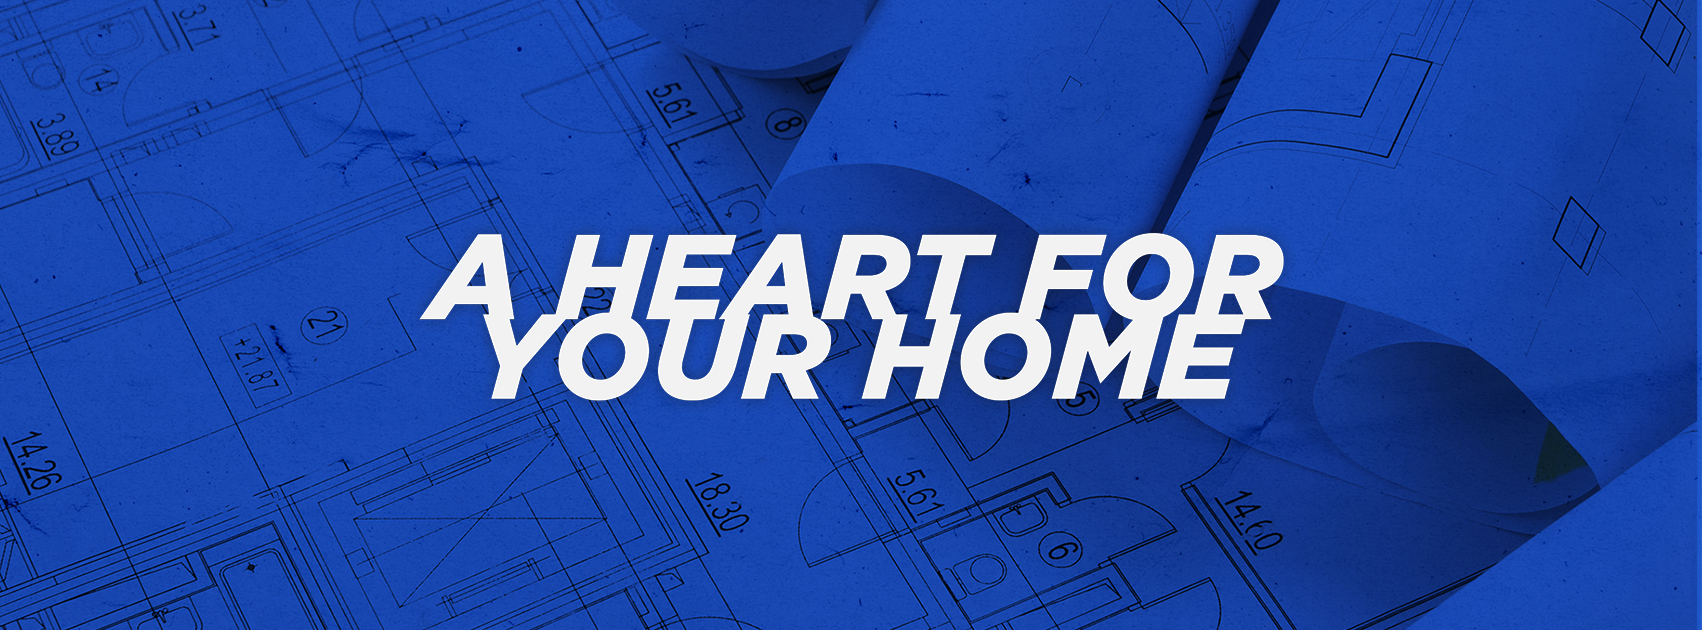 A Heart for your home FB Cover Photo.jpg